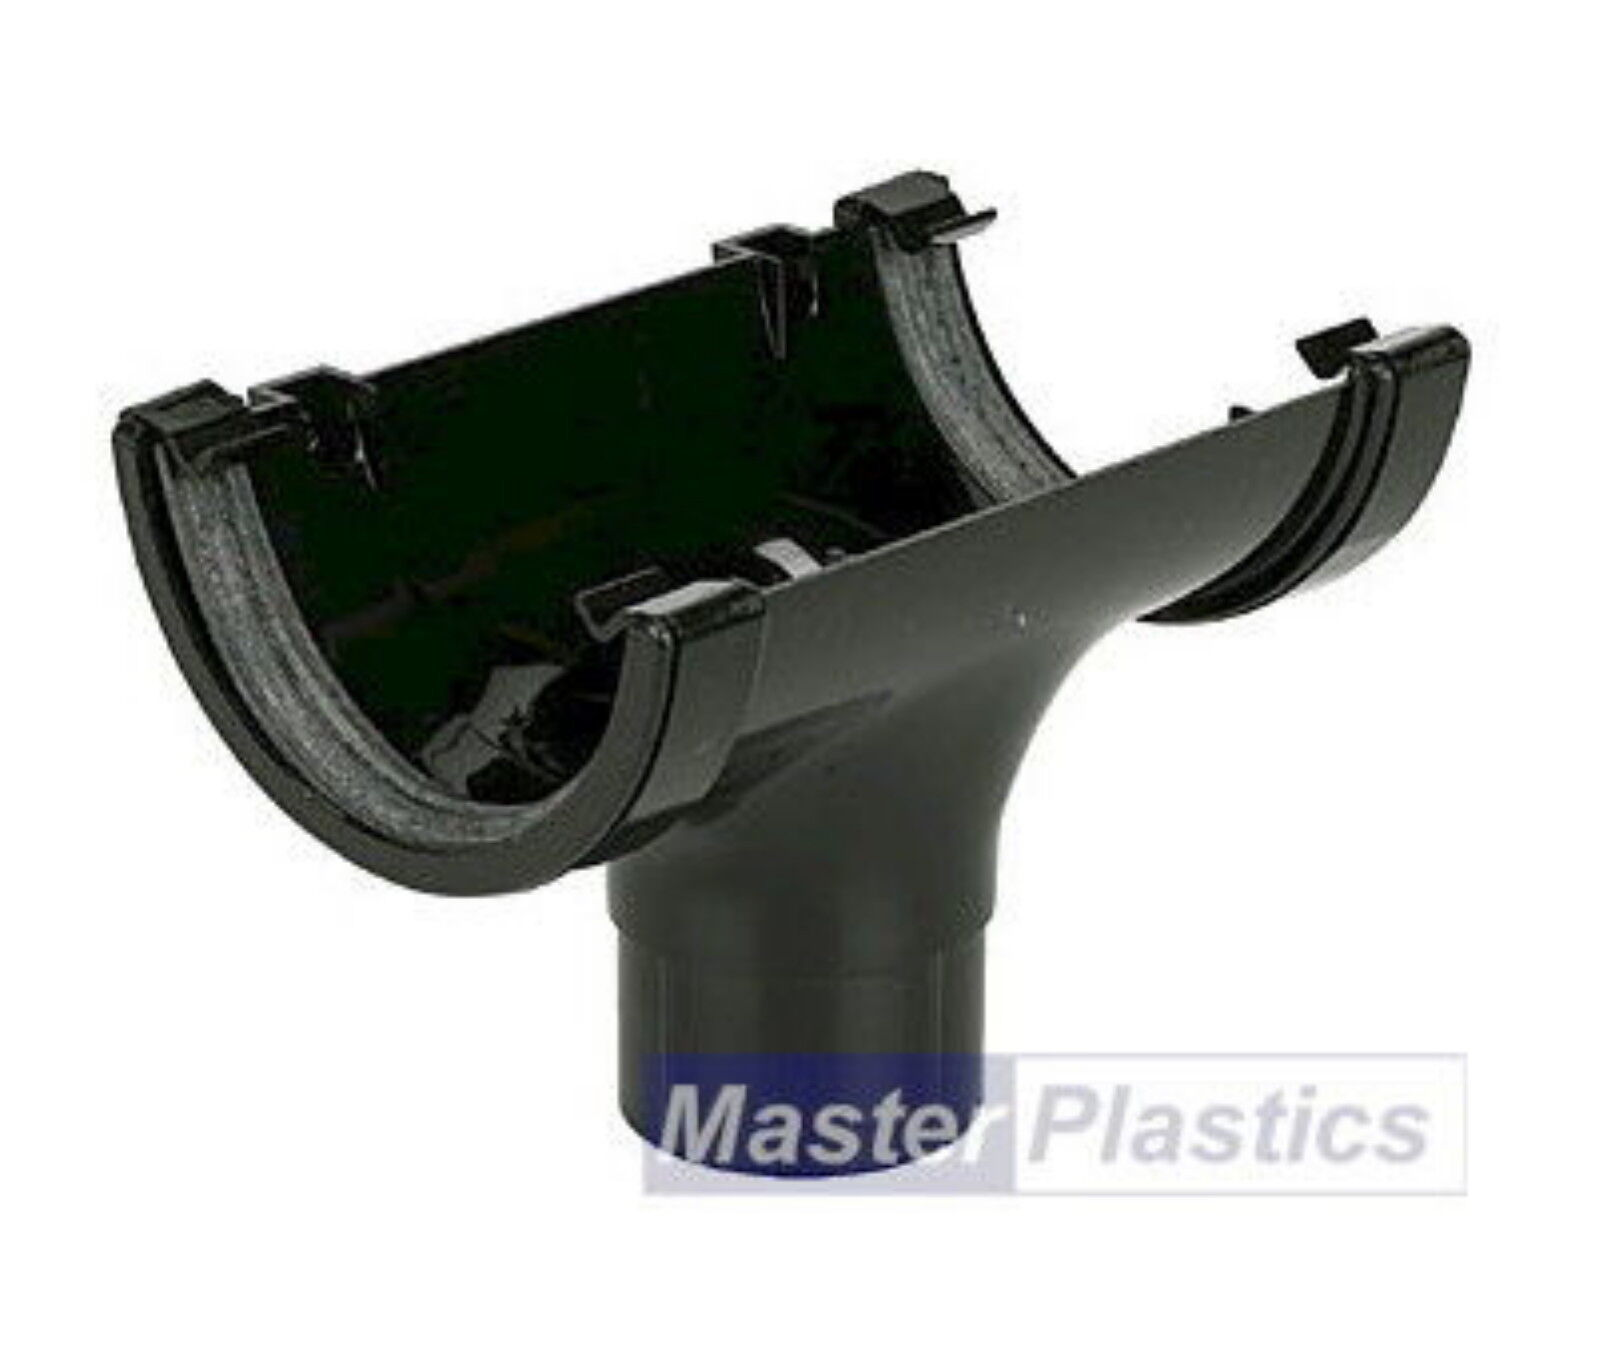 New Upvc Plastic Black Half Round Gutter And Guttering